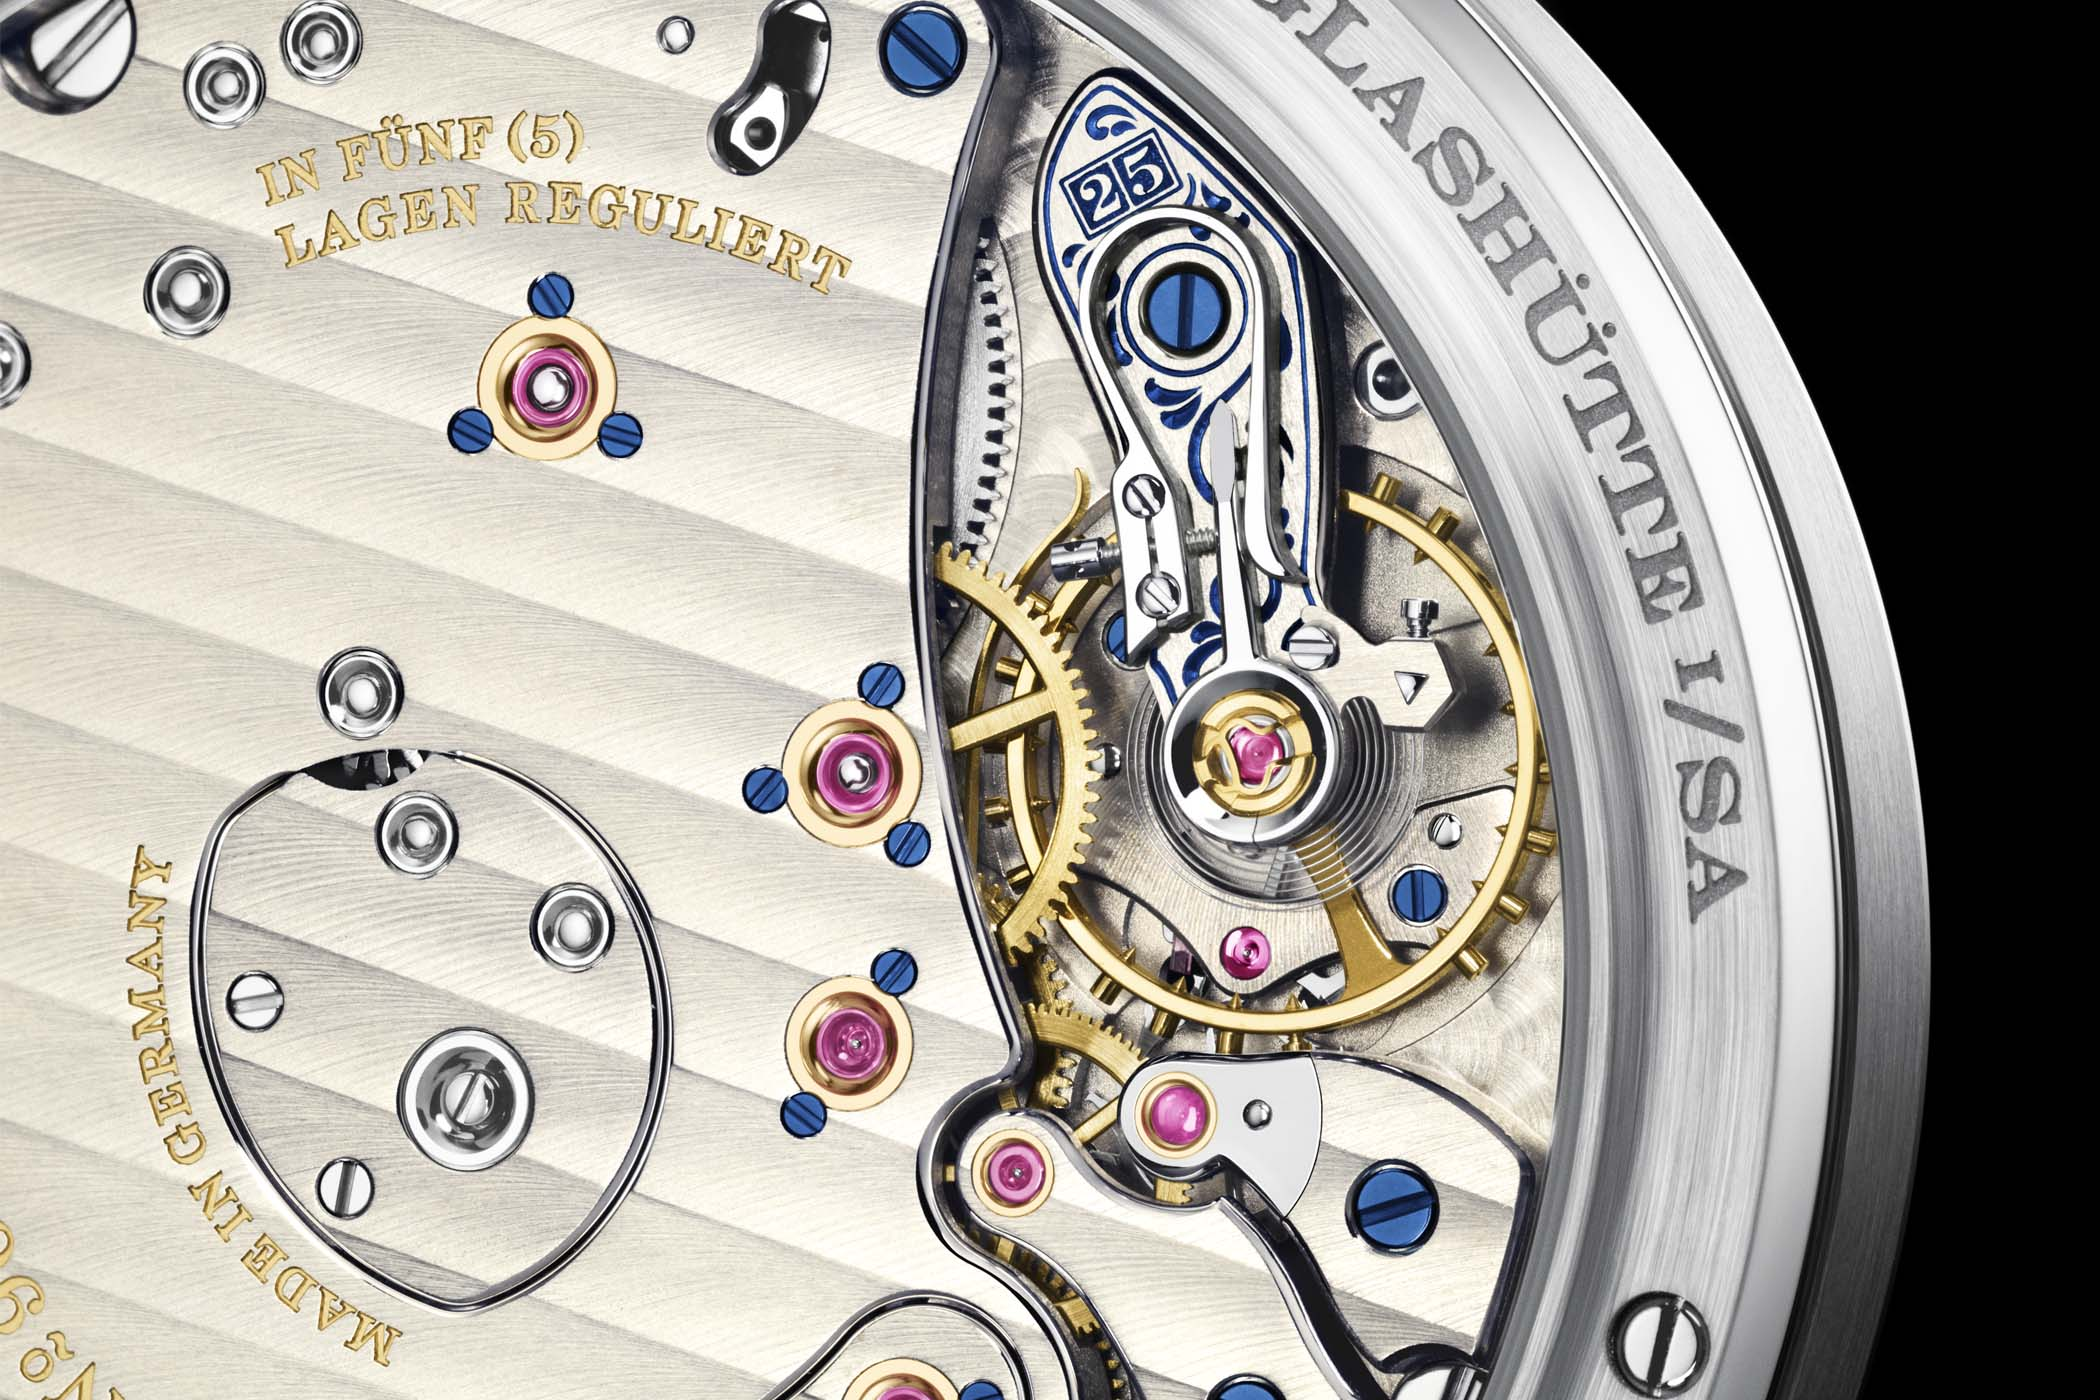 Grand Lange 1 25th Anniversary A. Lange Sohne - 117.066